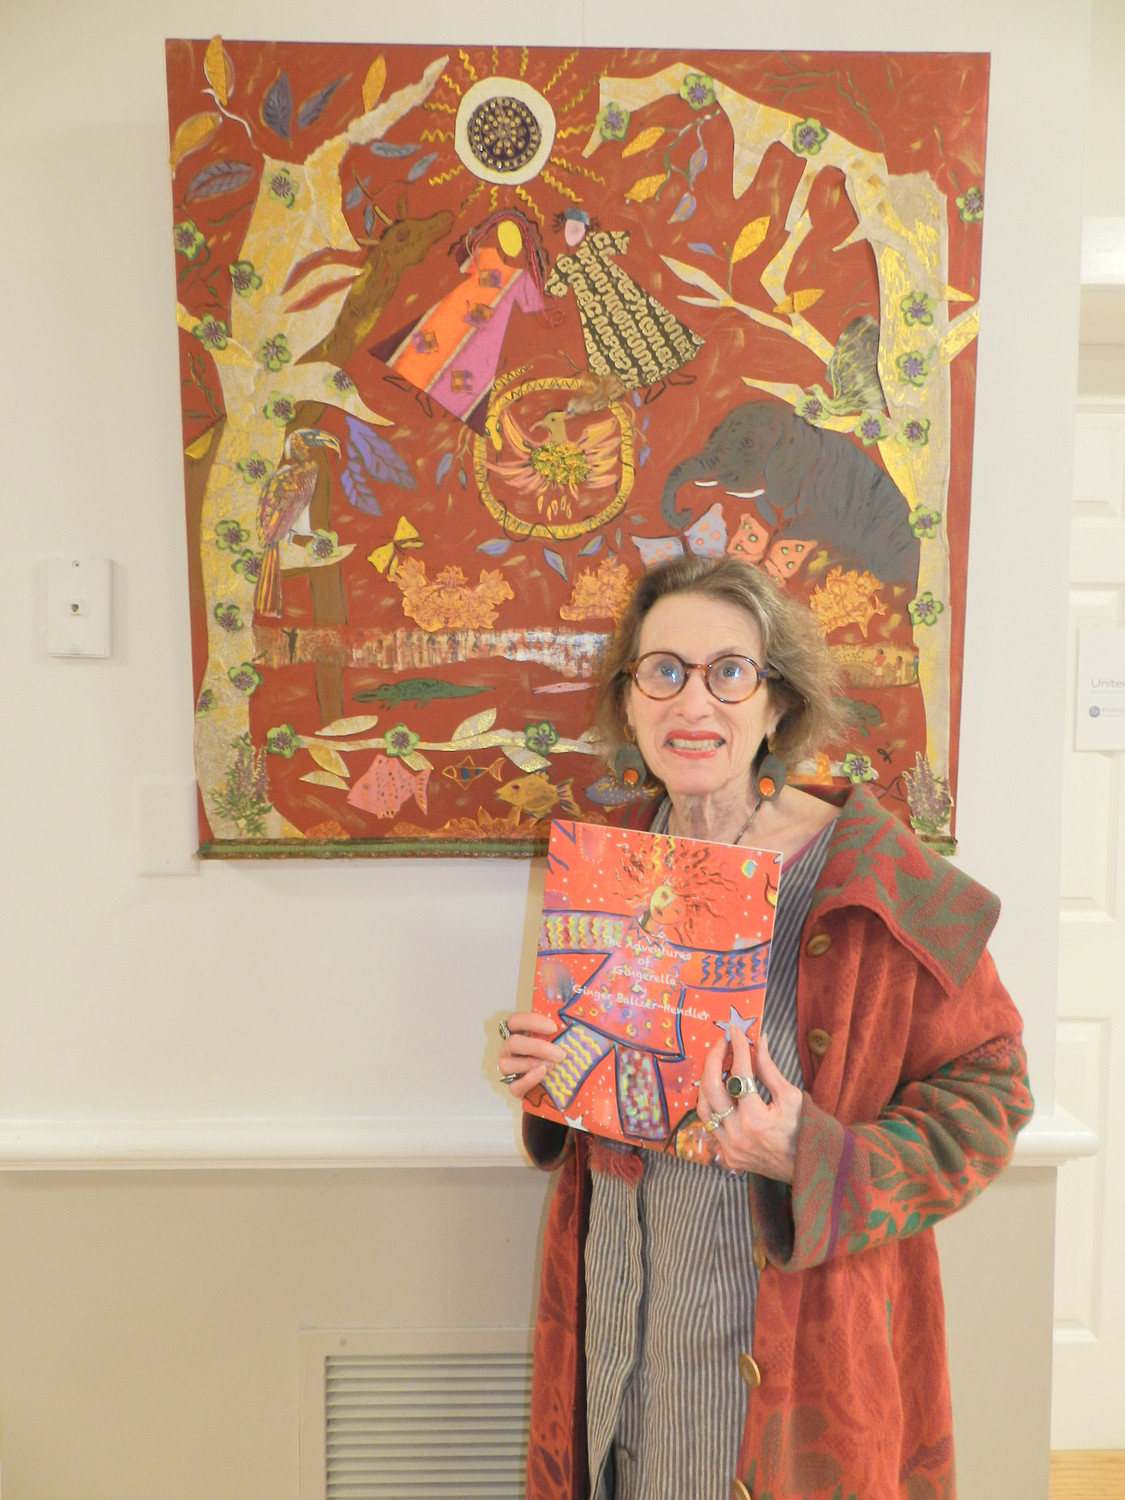 """Gingerella"" was an elaborate painting and a children's book, created by Glen Head resident Ginger Balizer-Hendler."